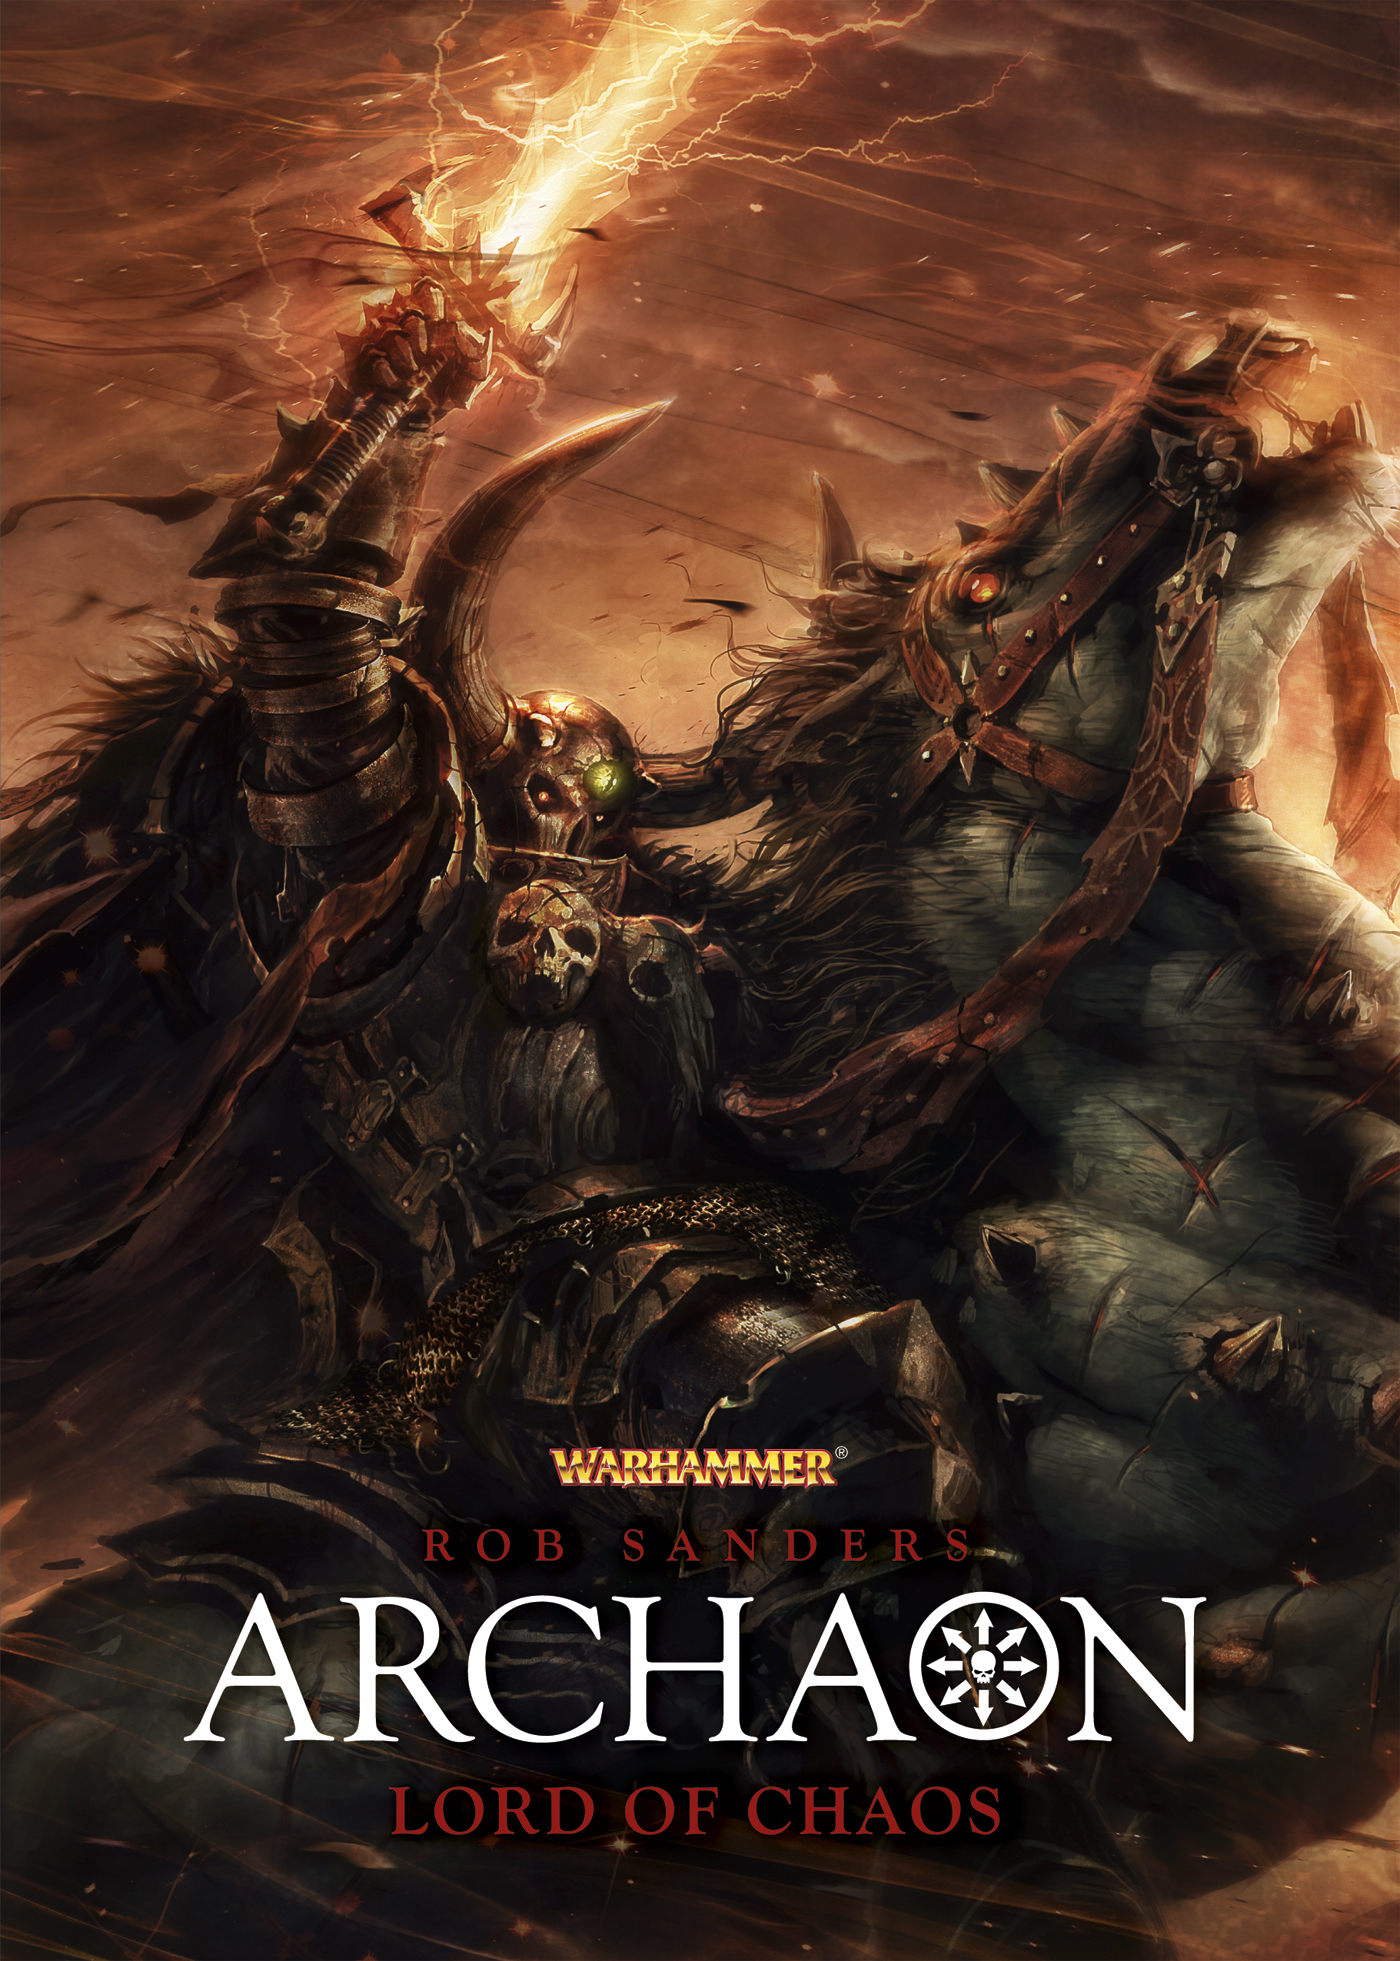 Archaon: Lord of Chaos by Rob Sanders